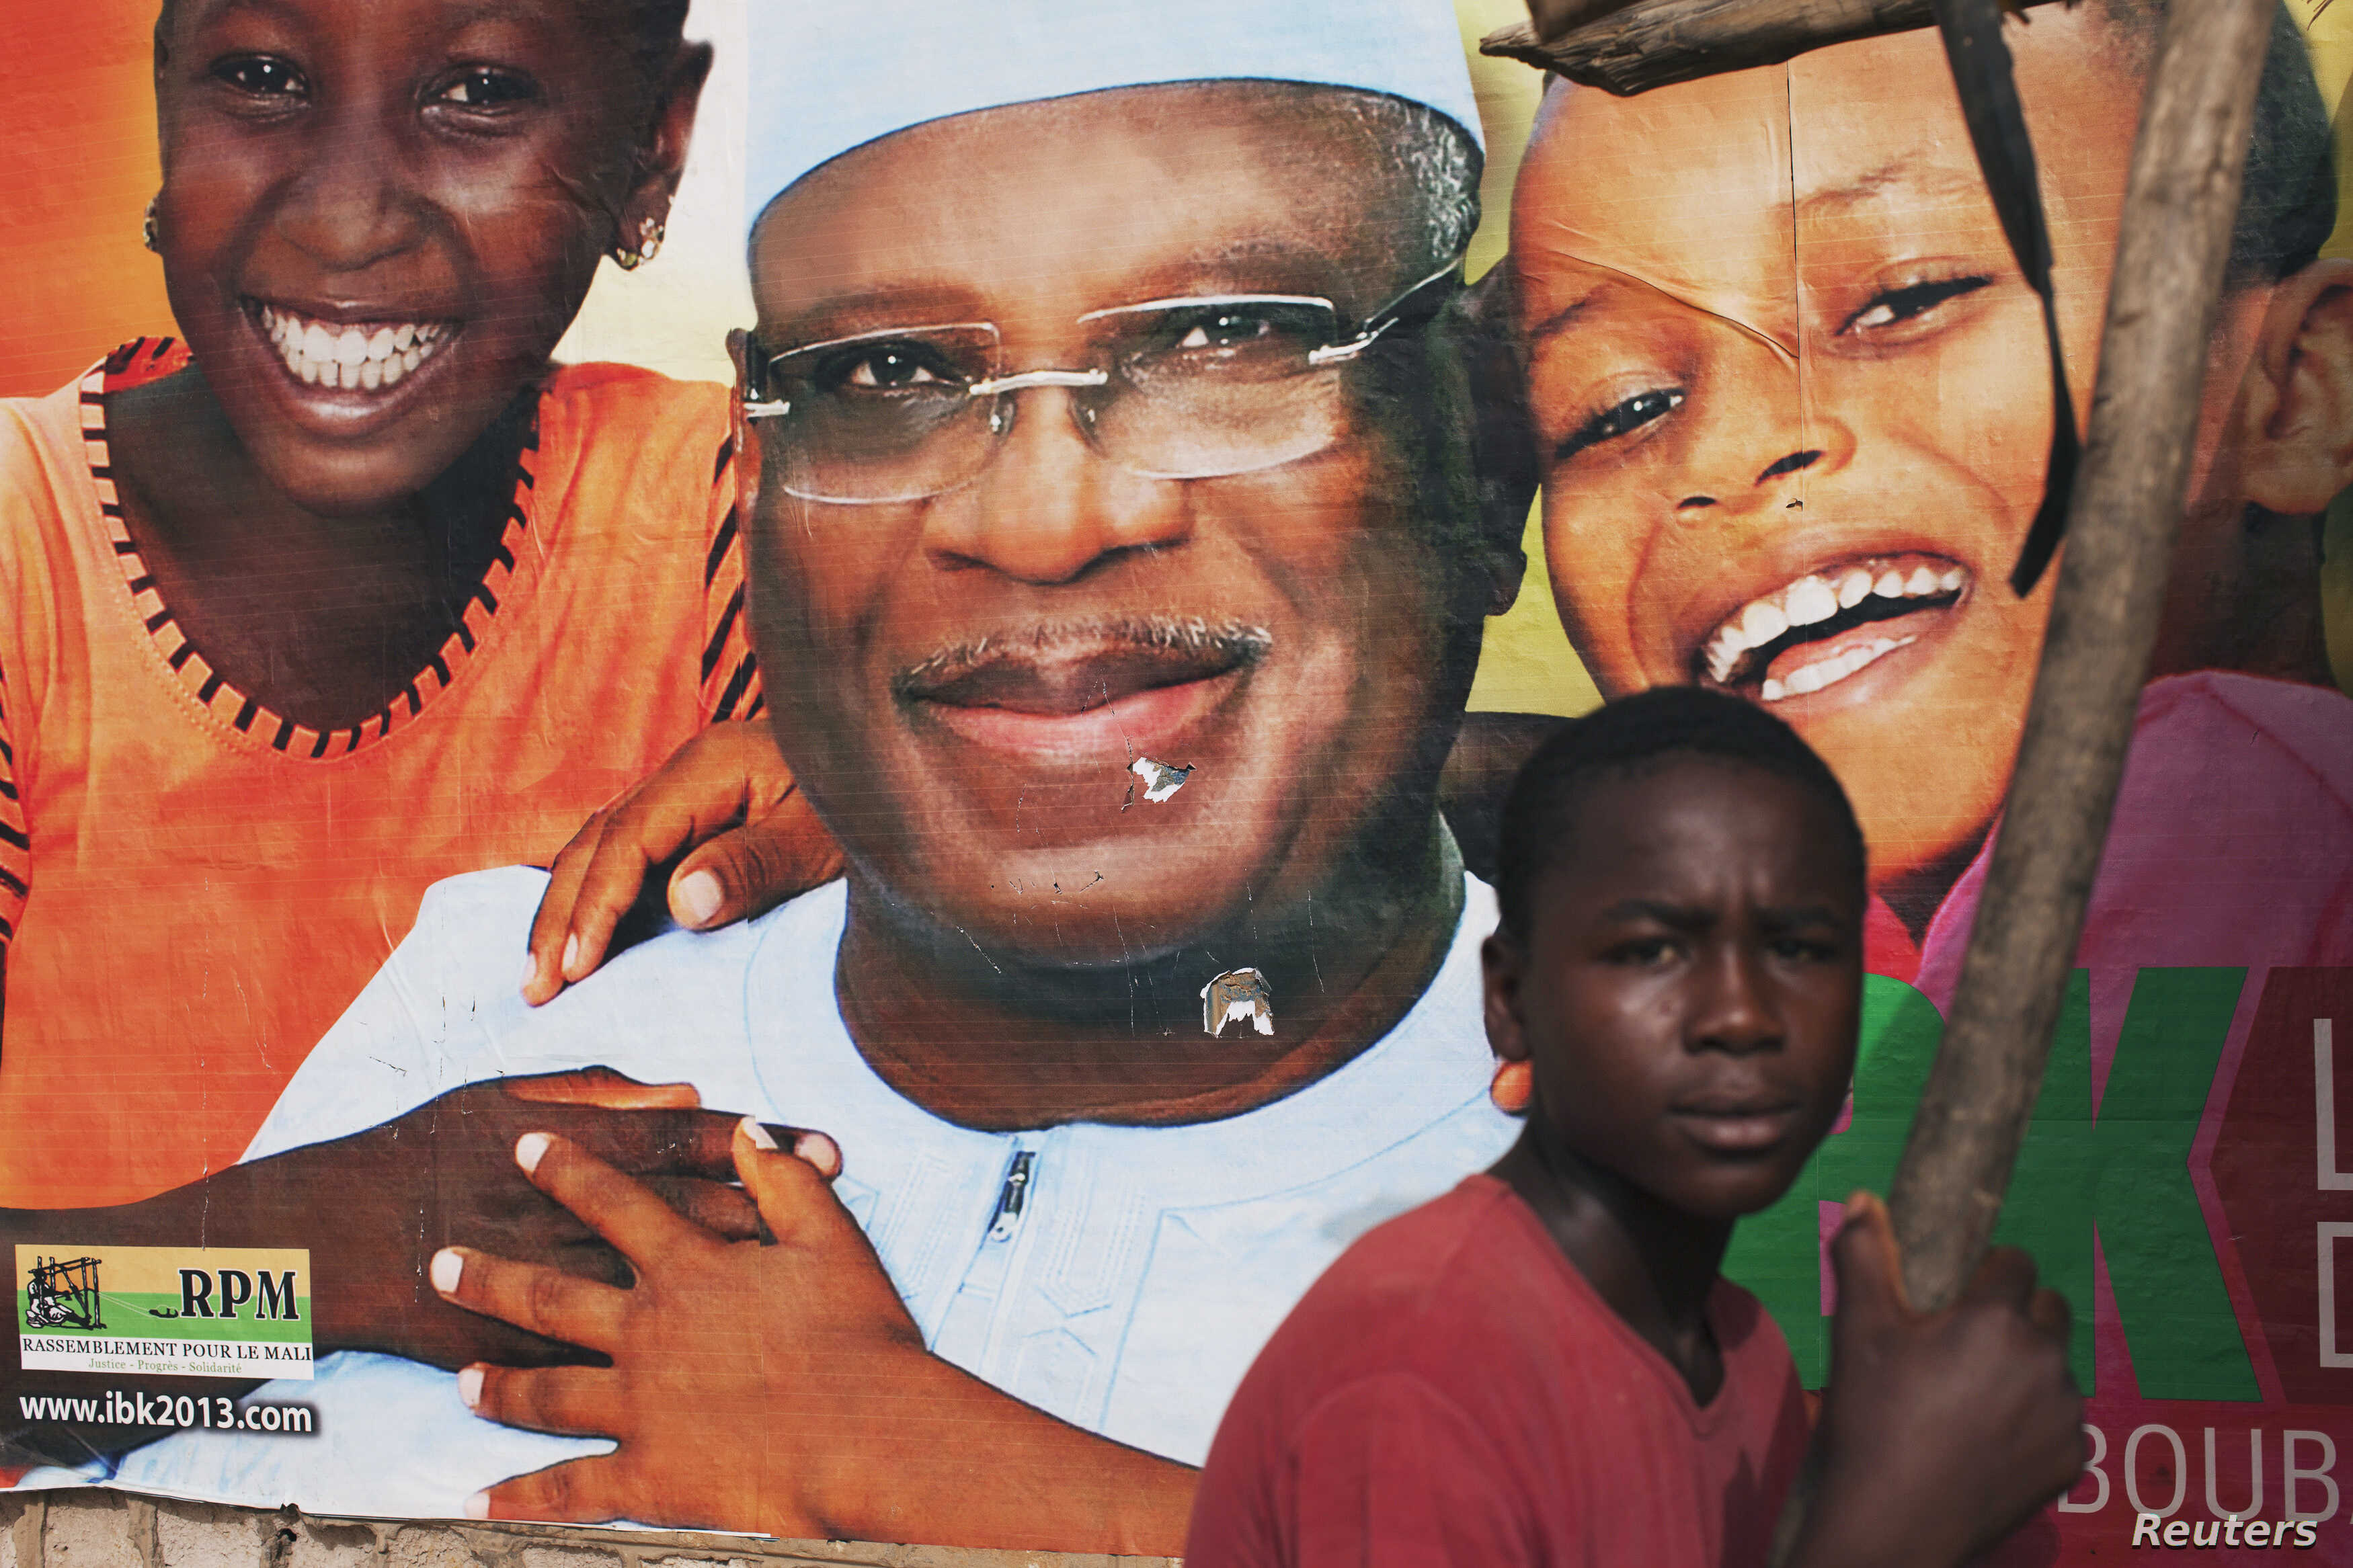 A boy sits in front of an electoral campaign poster for Malian presidential candidate Ibrahim Boubacar Keita, in Timbuktu, Mali, July 25, 2013.